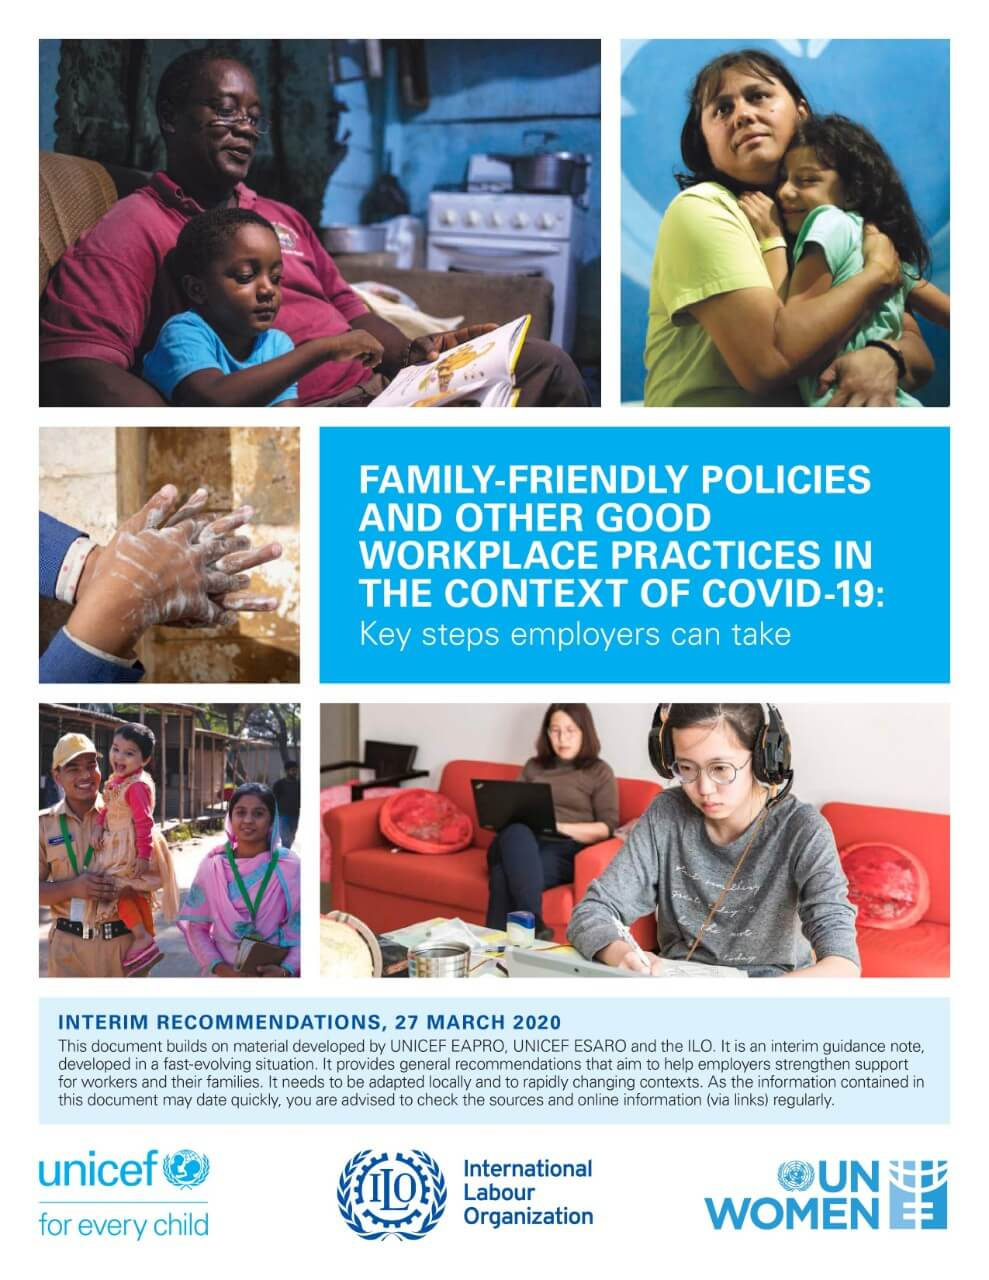 Family-friendly policies and other good workplace practices in the context of COVID-19: Key steps employers can take